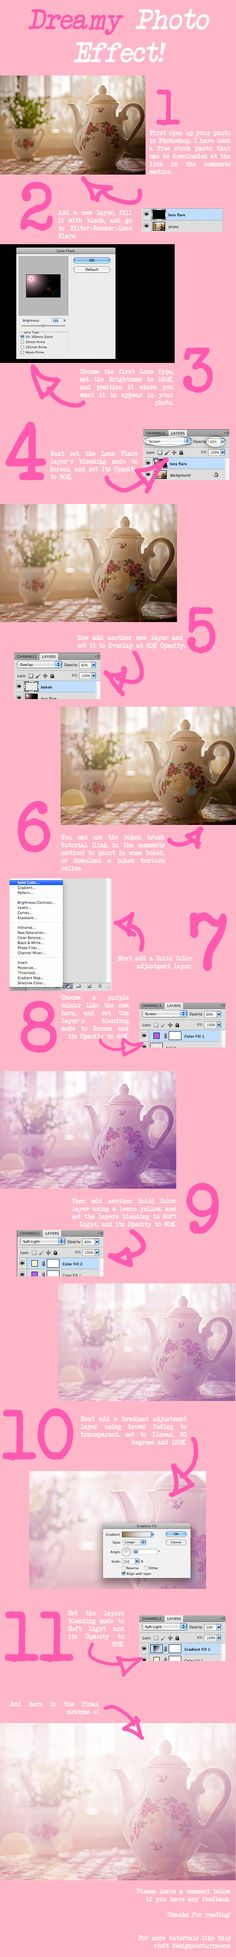 Dreamy Photo Effect Tutorial by *Planet37 on deviantART